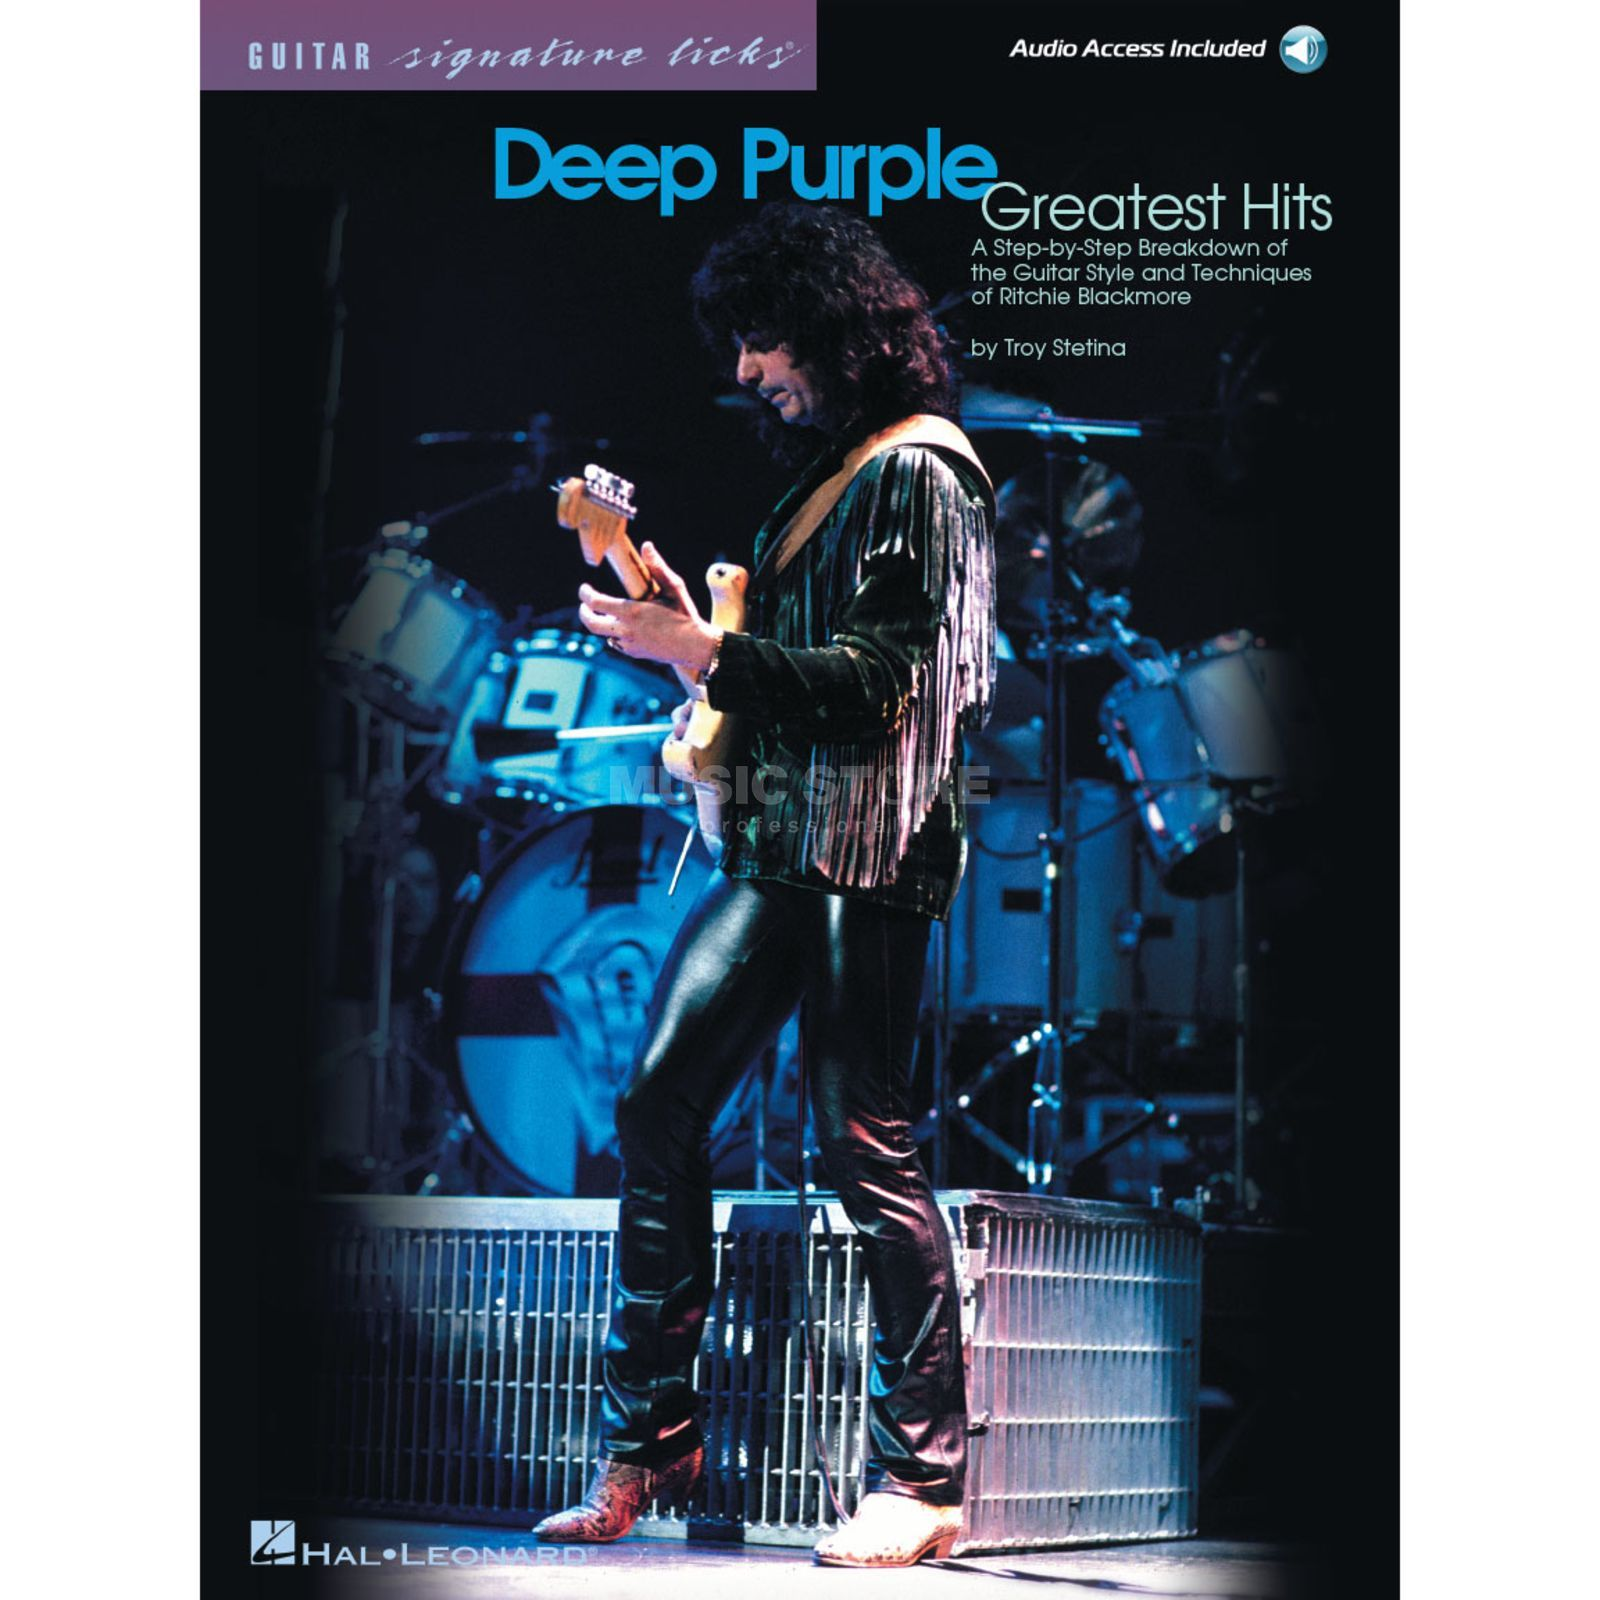 Hal Leonard Deep Purple: Greatest Hits Zdjęcie produktu